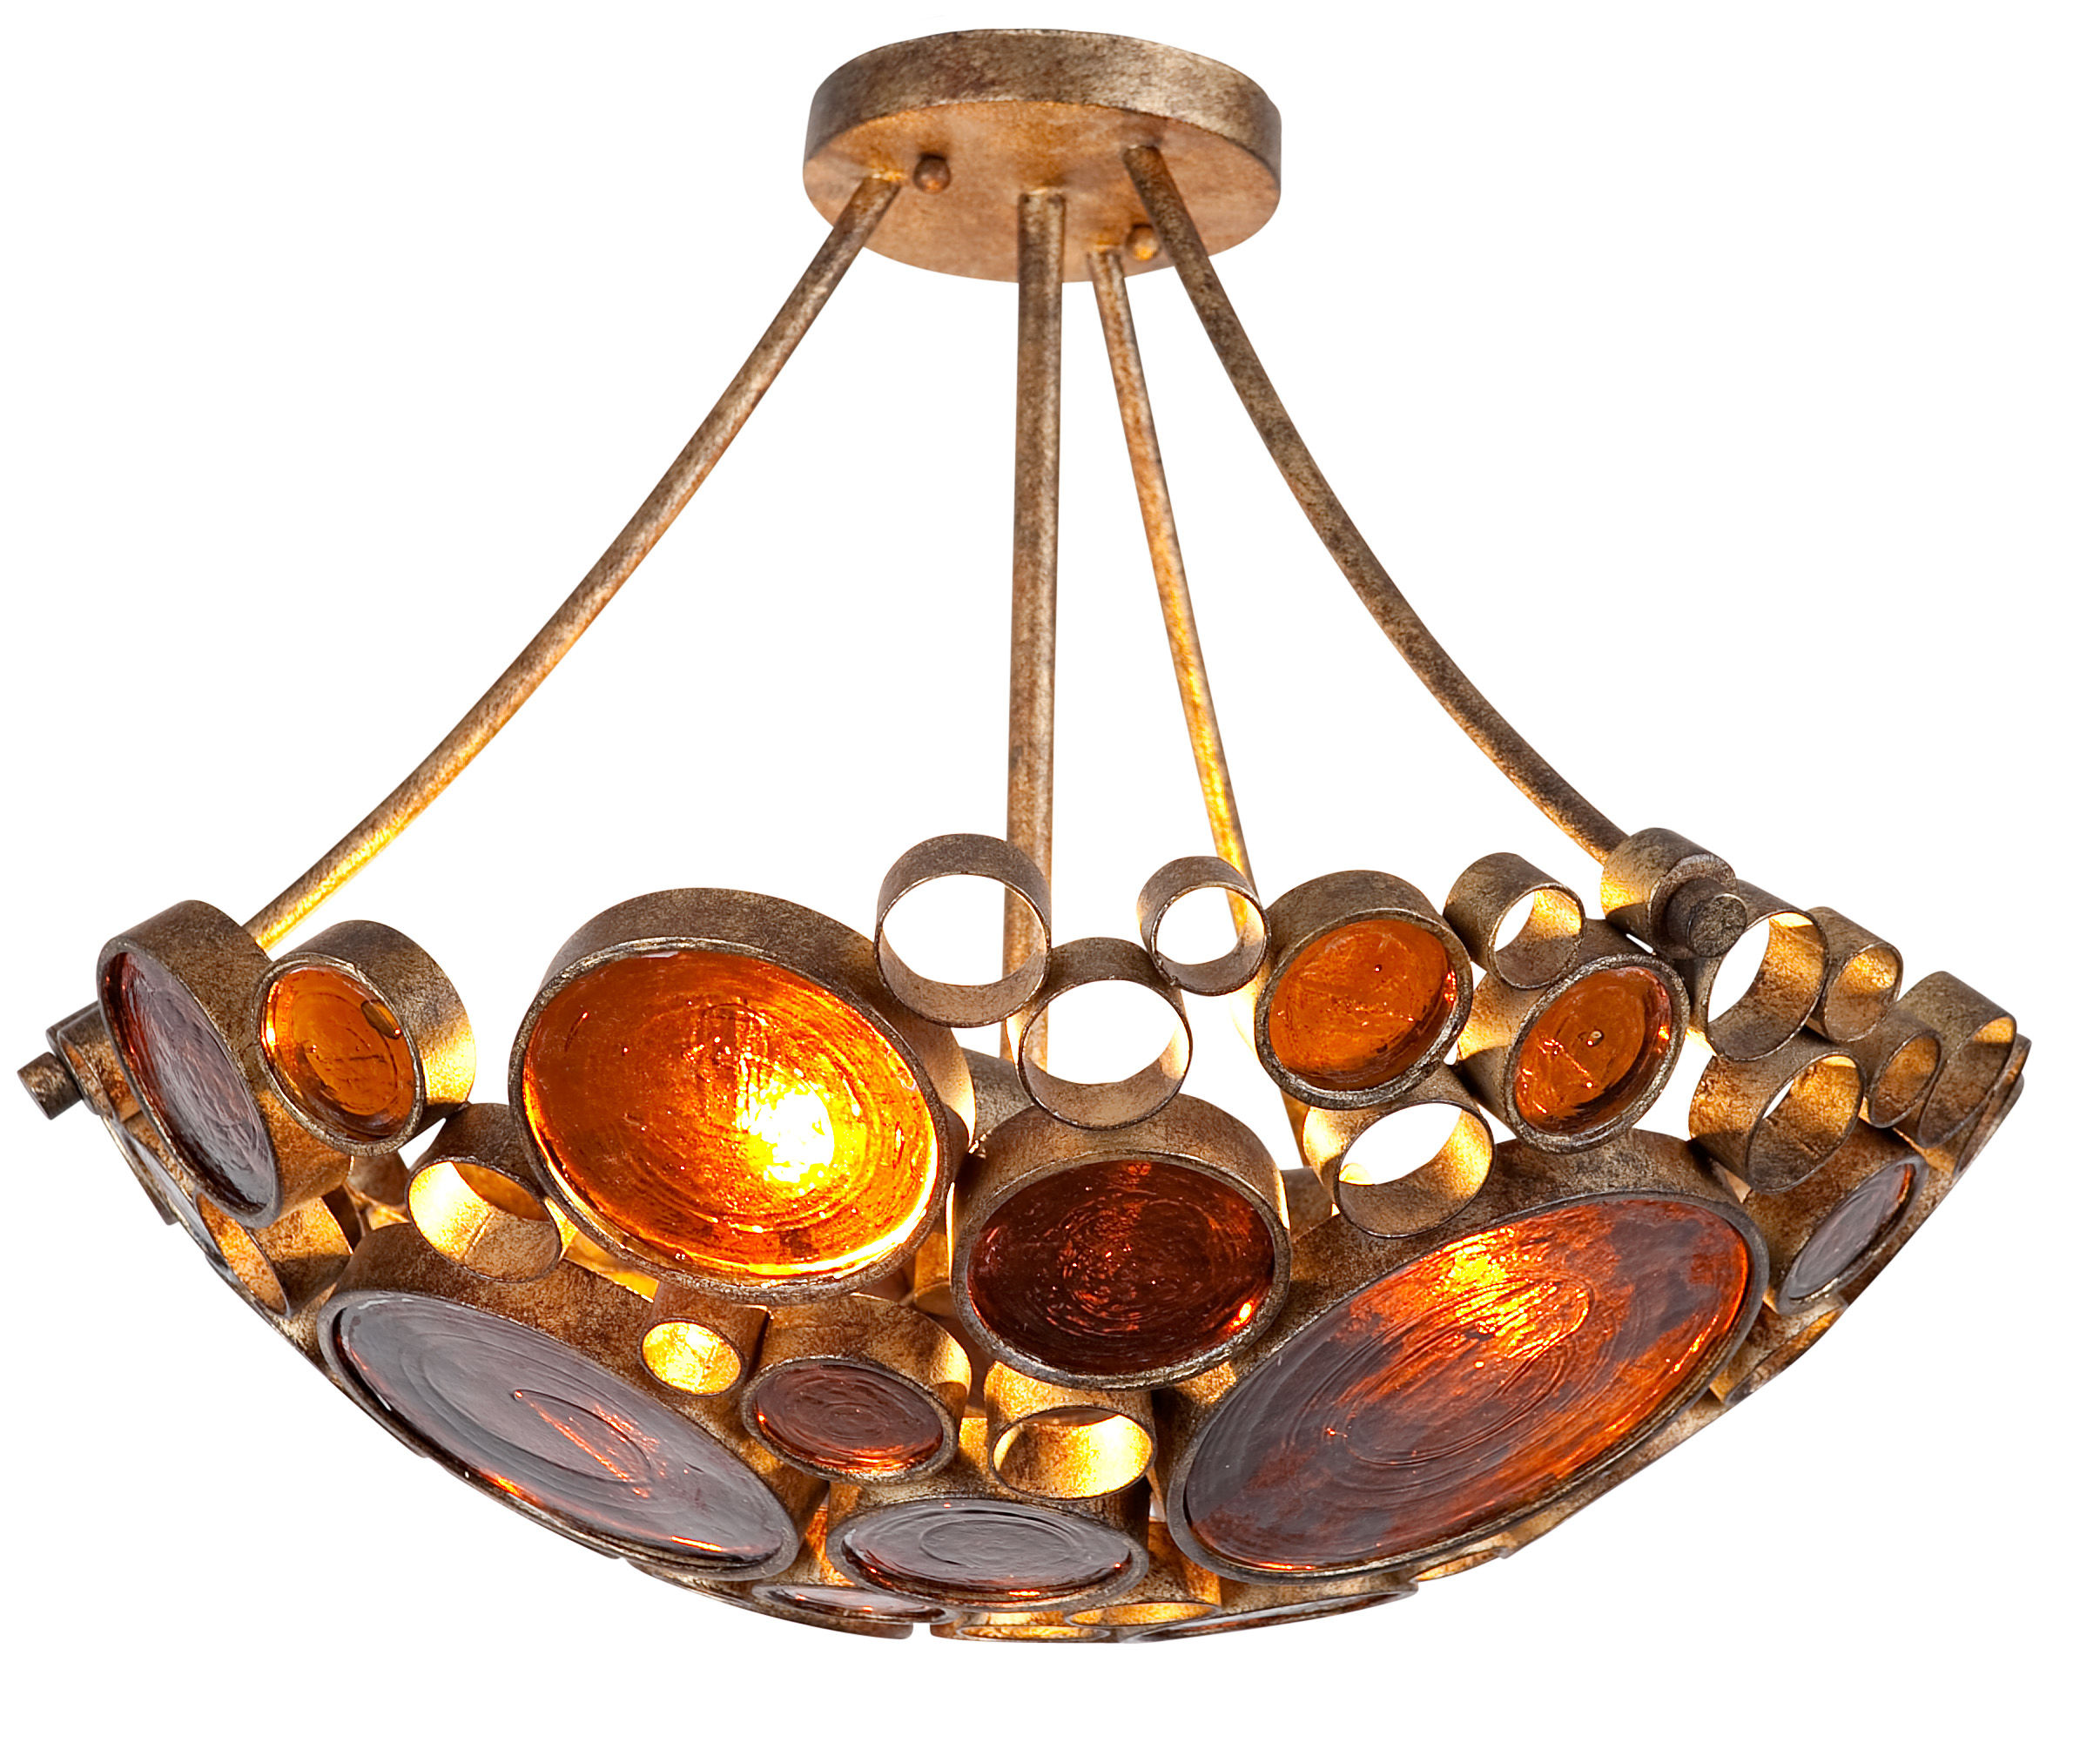 Varaluz 165s03ho hammered ore fascination 3 light hand forged varaluz 165s03ho hammered ore fascination 3 light hand forged recycled steel semi flush mount ceiling fixture lightingshowplace arubaitofo Image collections